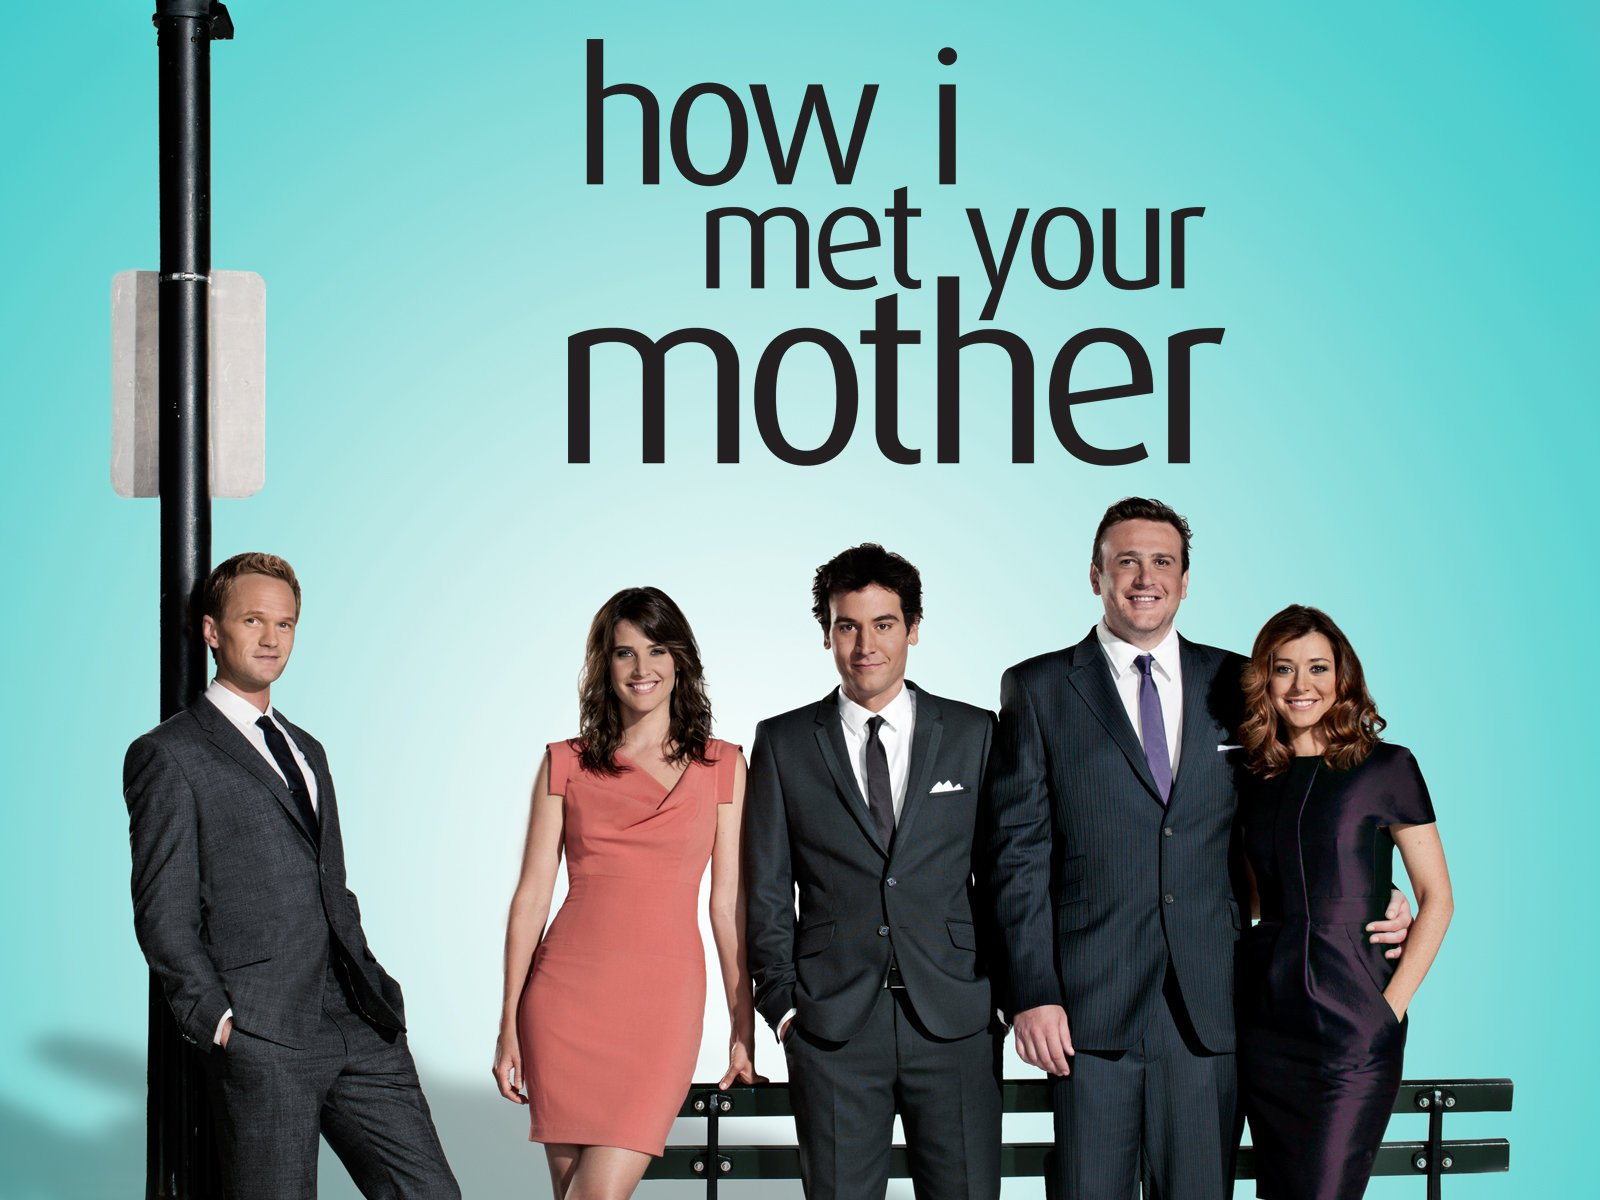 Bildergebnis für how i met your mother